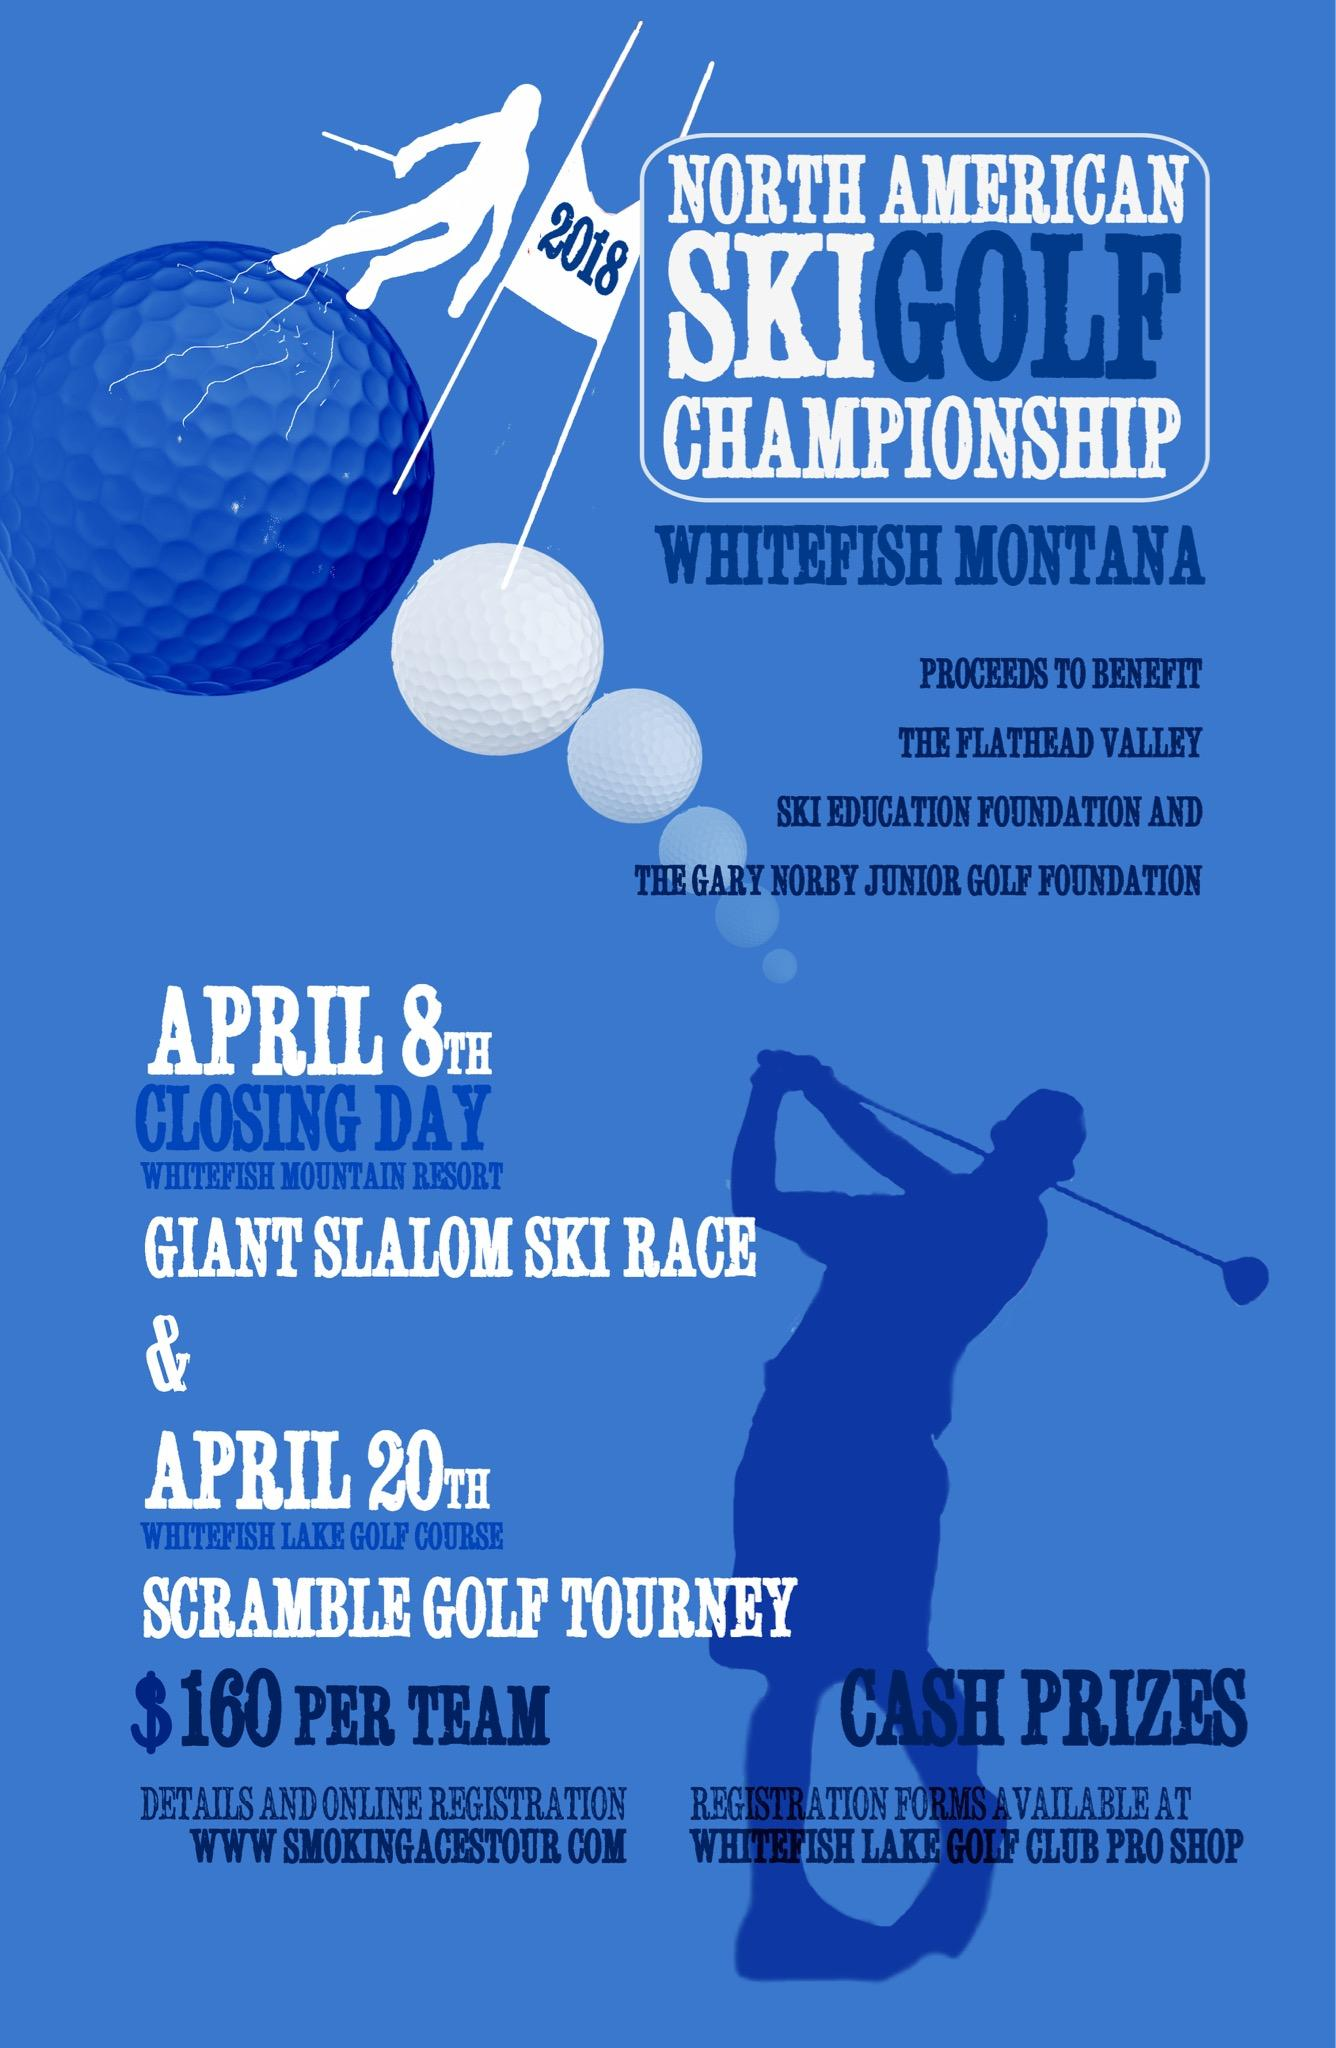 SkiGolf Scramble Tournament Last Chance Sign Up